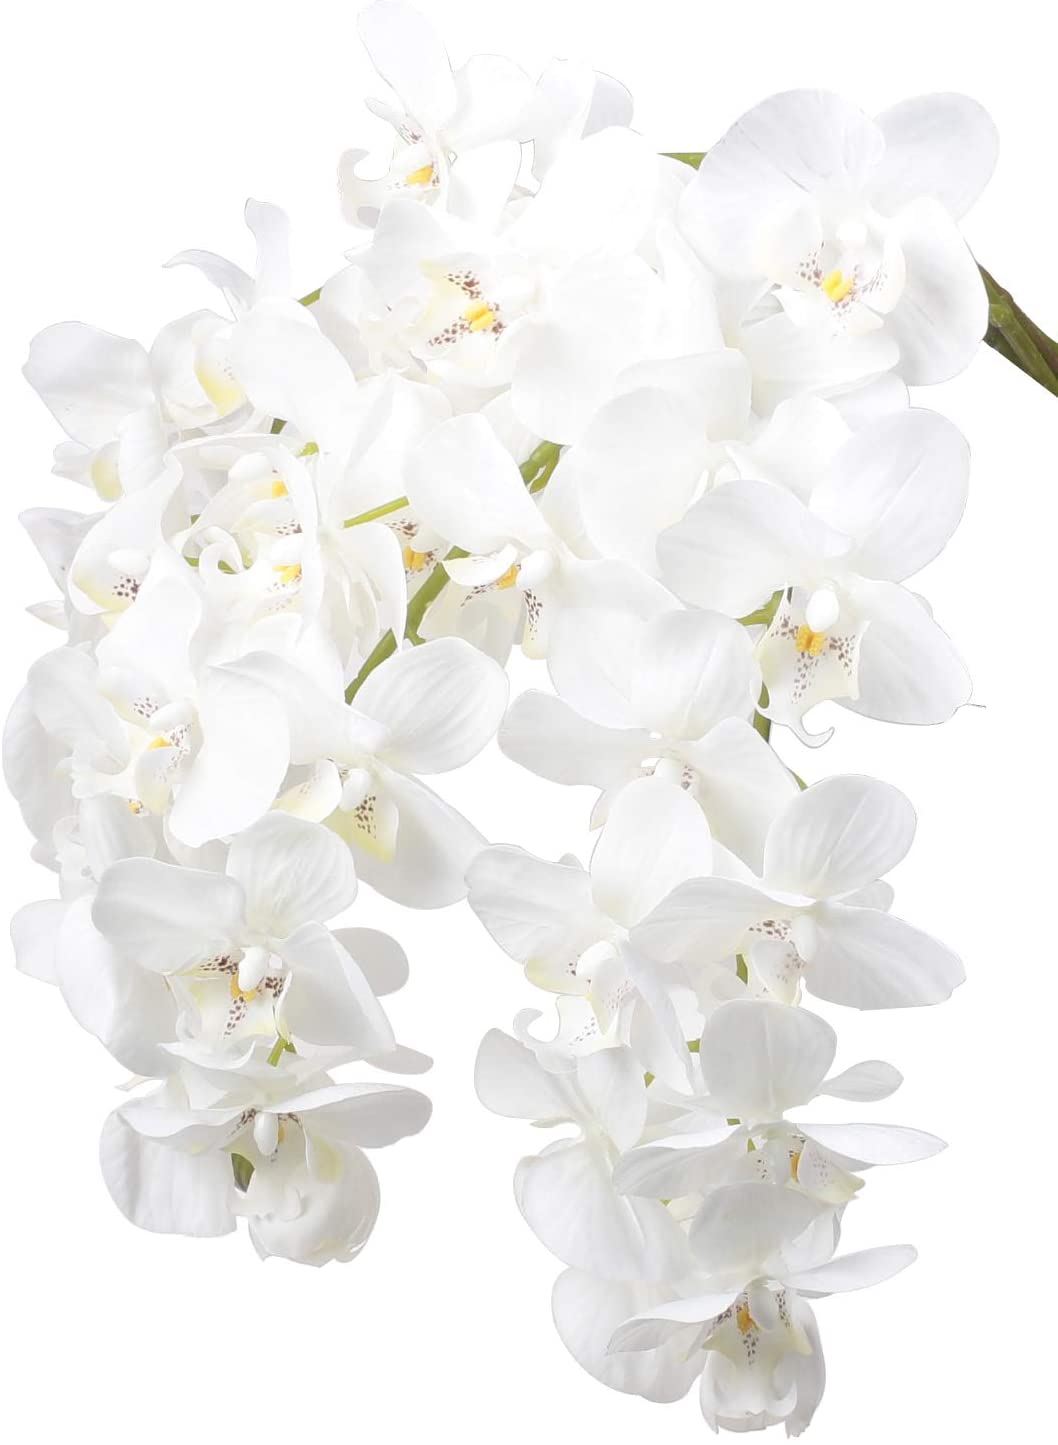 Ivalue 28 Artificial Orchid Flower Stem Plants Pack Of 4 Real Touch White Simulation Butterfly Phalaenopsis Flowers For Home Wedding Party Decoration 4 White Orchid Amazon Co Uk Kitchen Home